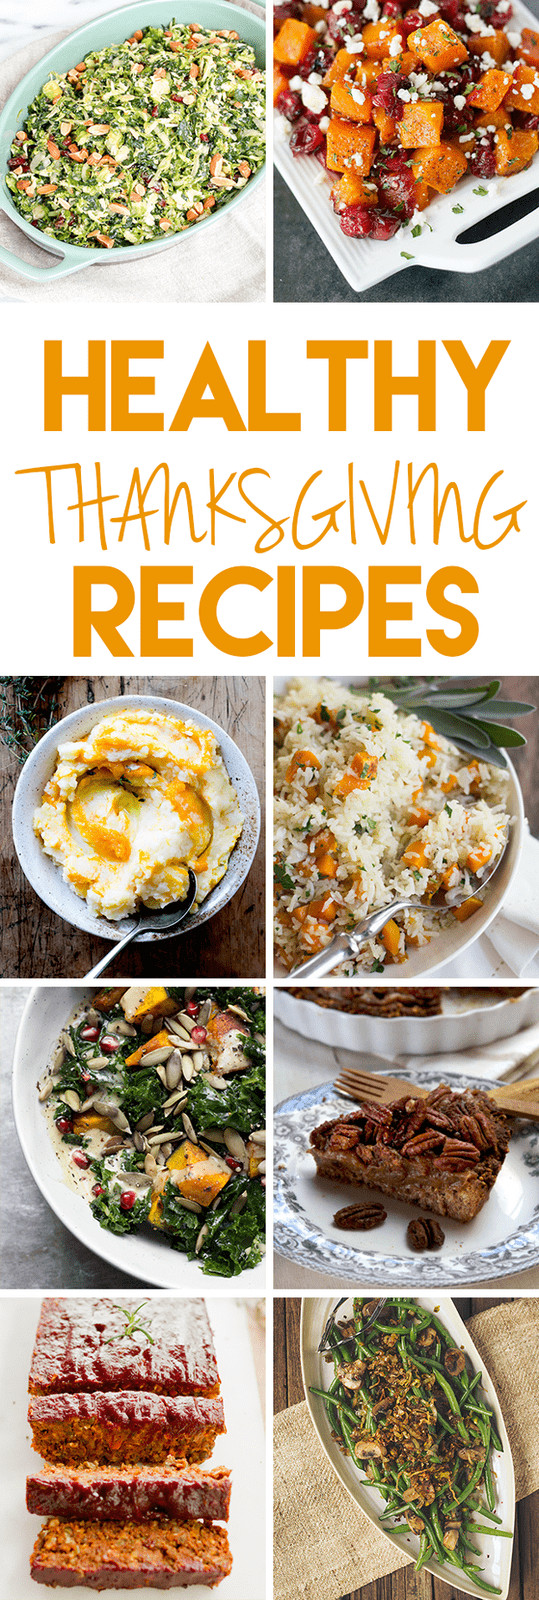 Healthy Thanksgiving Meals  Healthy Thanksgiving Recipes gluten free ve arian